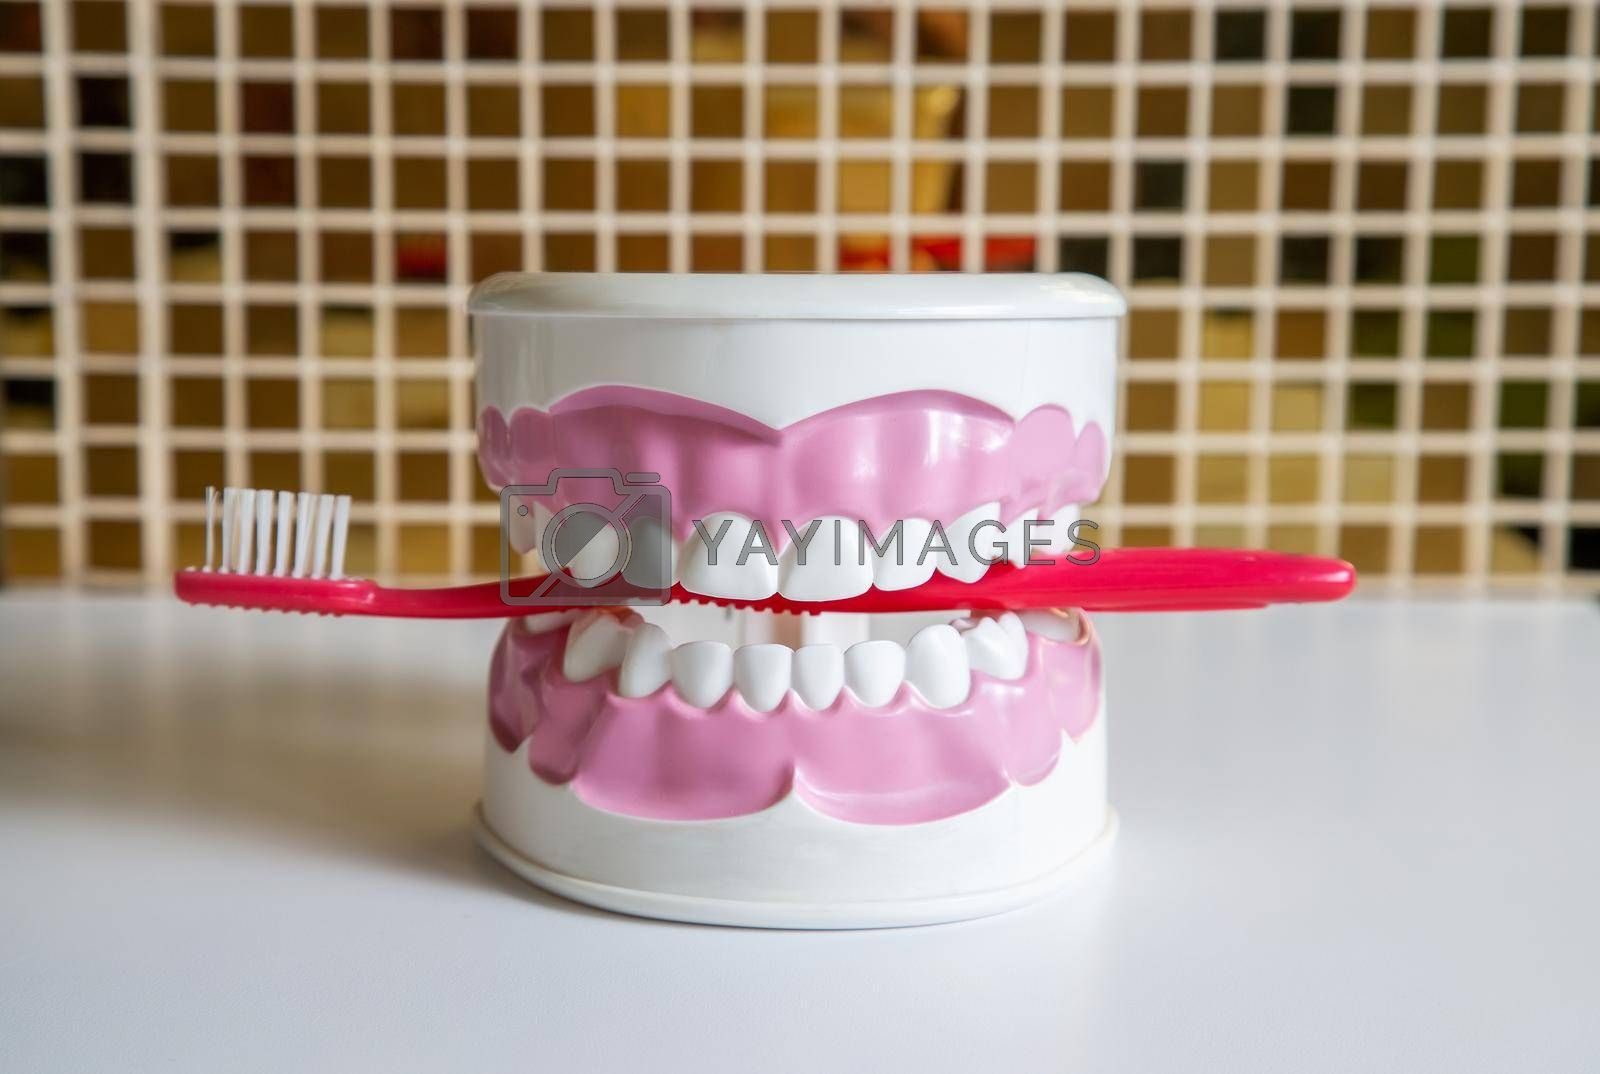 Clean teeth dental jaw model and red thooth brush on the table in dentists office. The concept of proper oral care, caries hygiene.